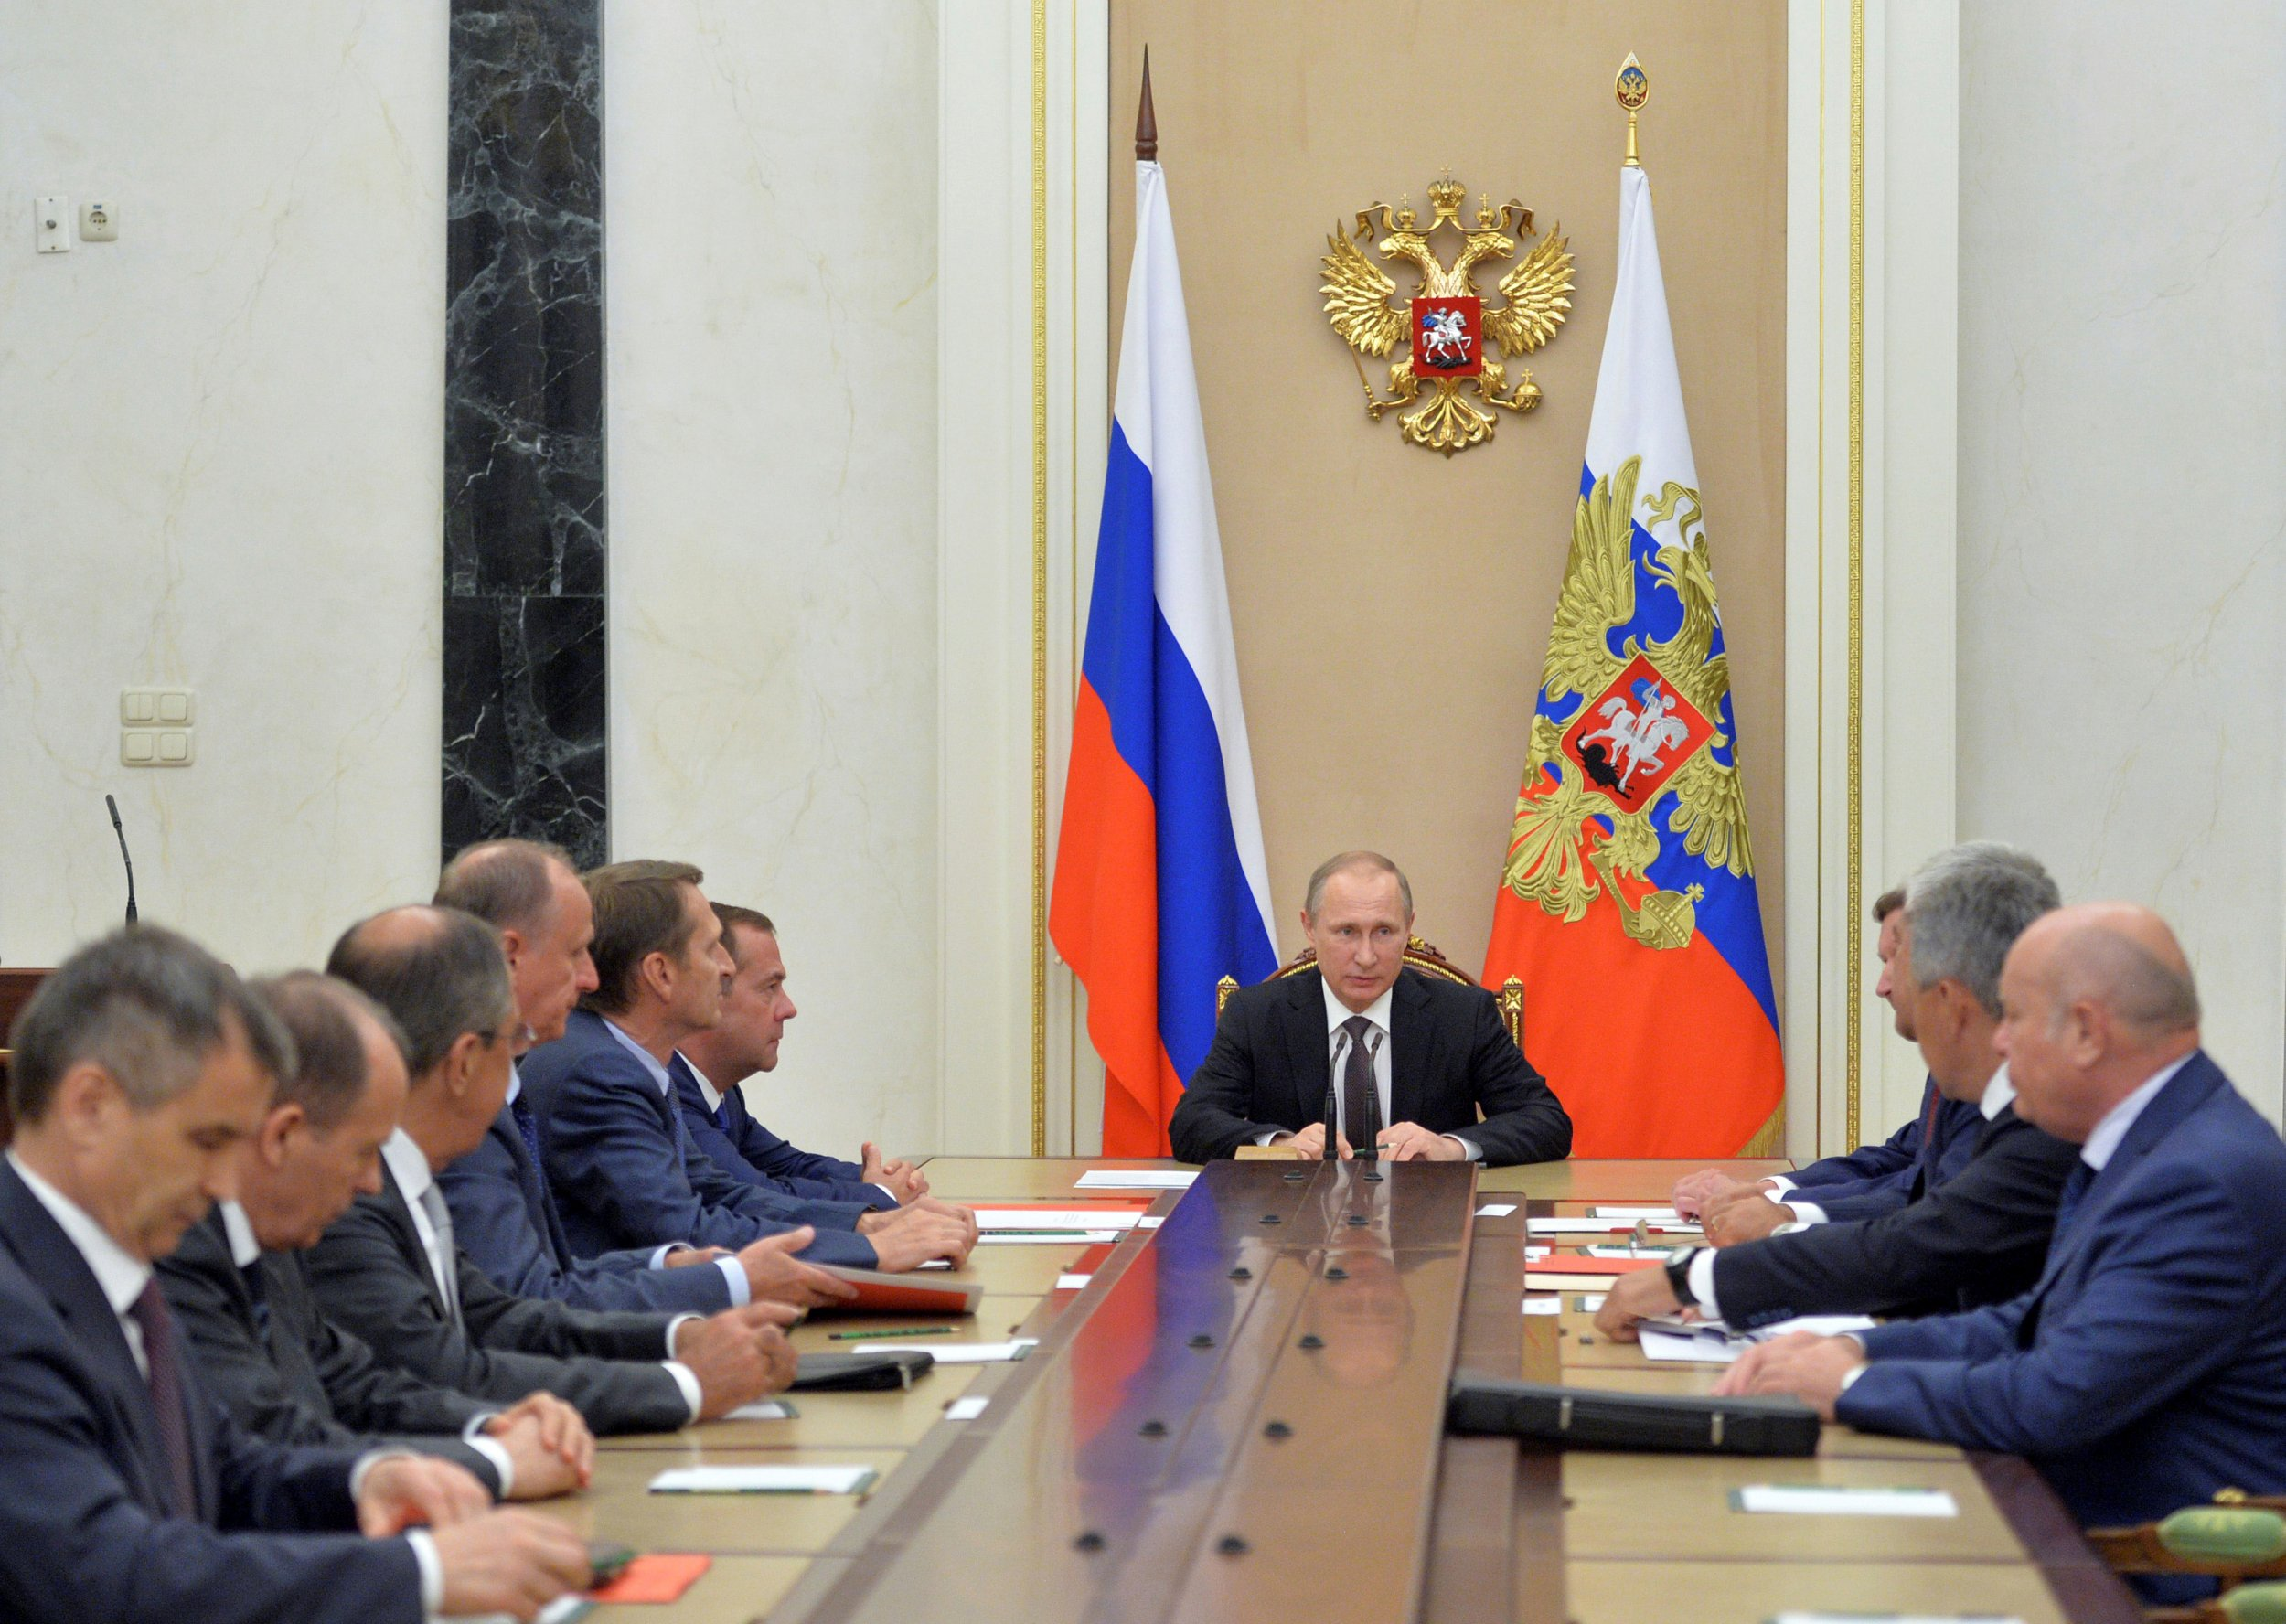 Vladimir Putin and security council